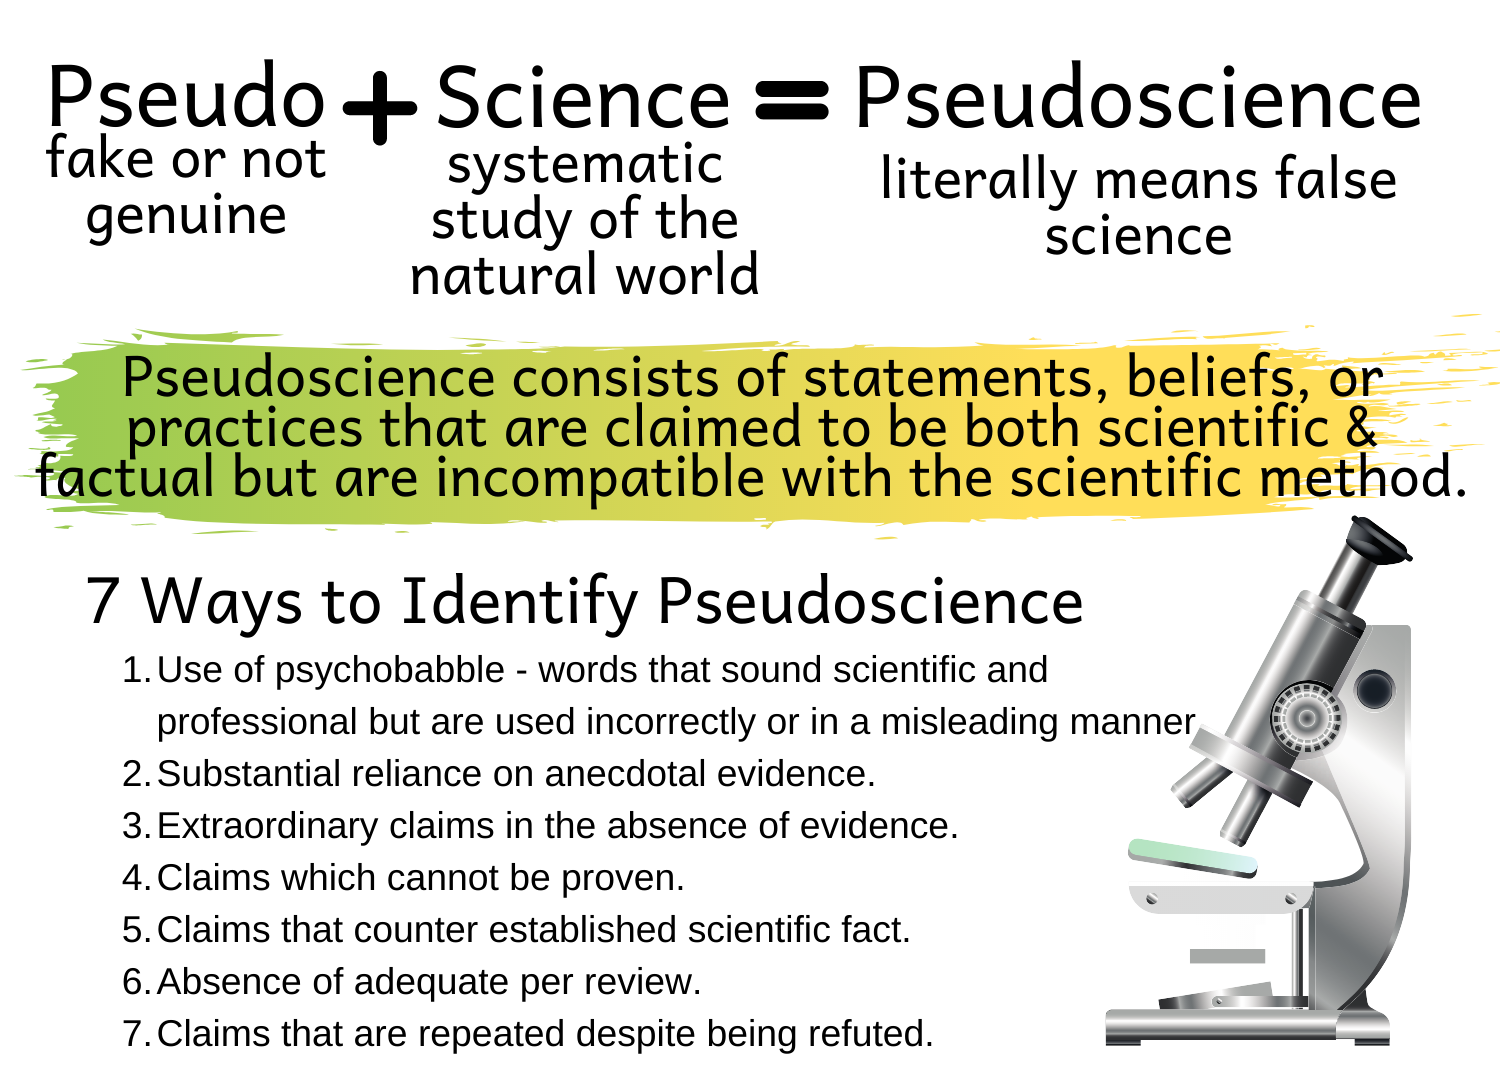 Use of psychobabble - words that sound scientific and professional but are used incorrectly or in a misleading manner. Substantial reliance on anecdotal evidence. Extraordinary claims in the absence of evidence. Claims which cannot be proven. Claims that counter established scientific fact. Absence of adequate per review. Claims that are repeated despite being refuted.